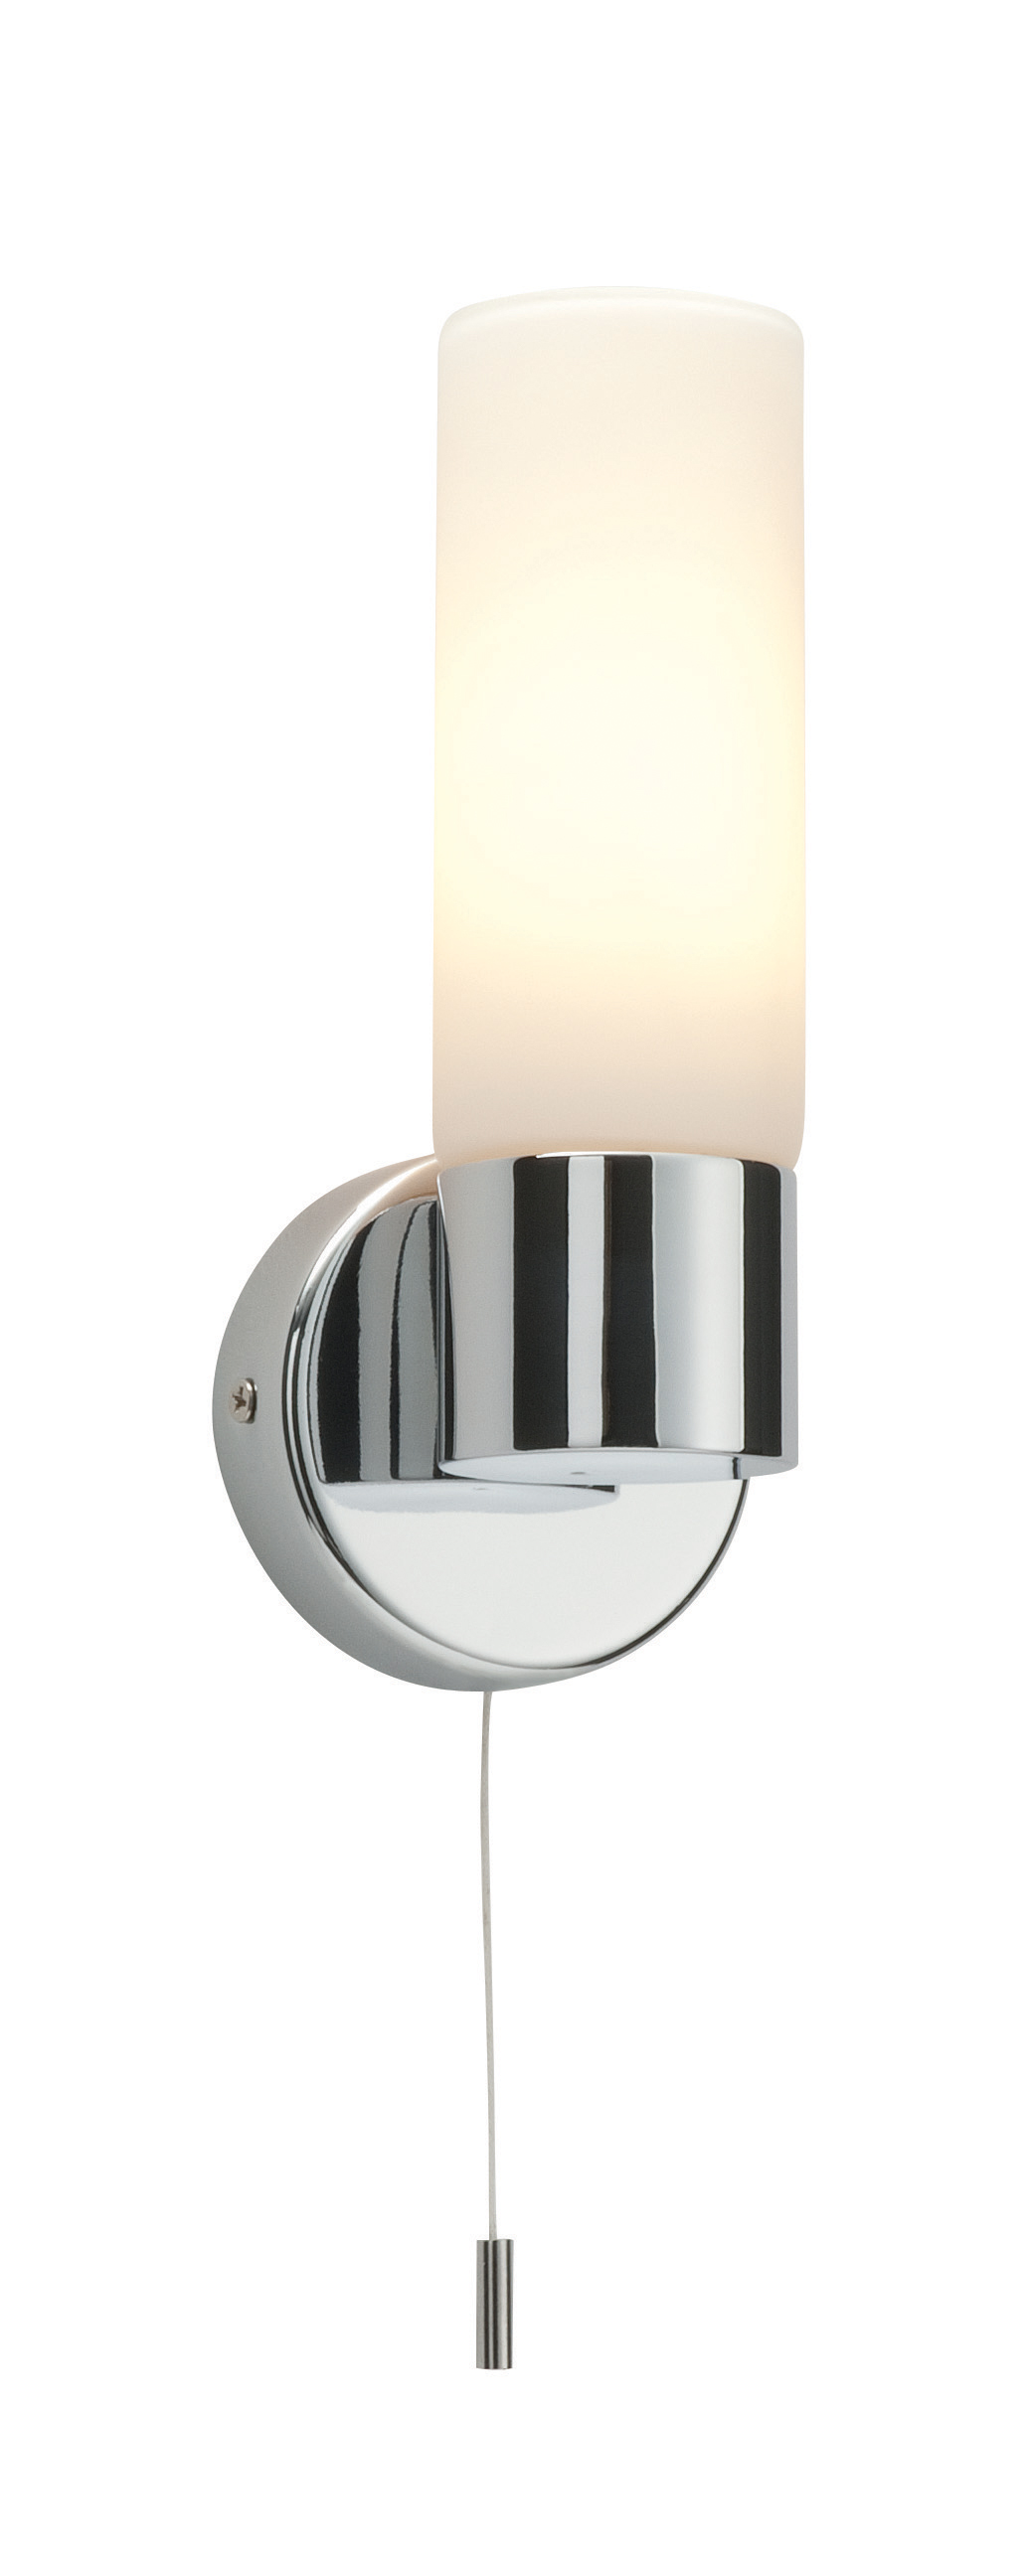 Bathroom Wall Lights Pull Cord Switch : Saxby Pure single bathroom wall light pull cord switch chrome glass 40W E14 eBay